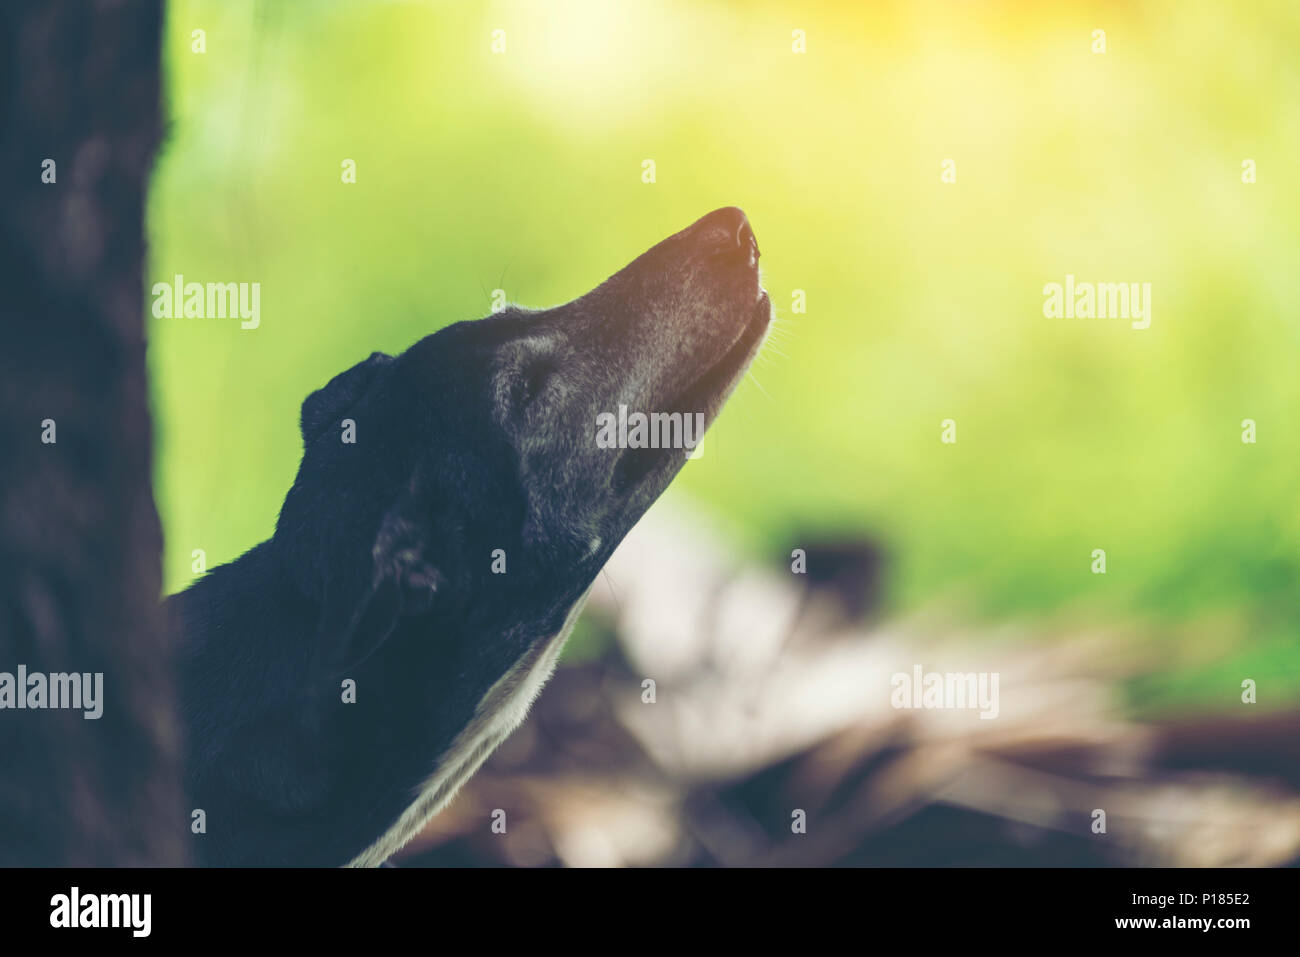 black dog In the shady garden is natural. - Stock Image